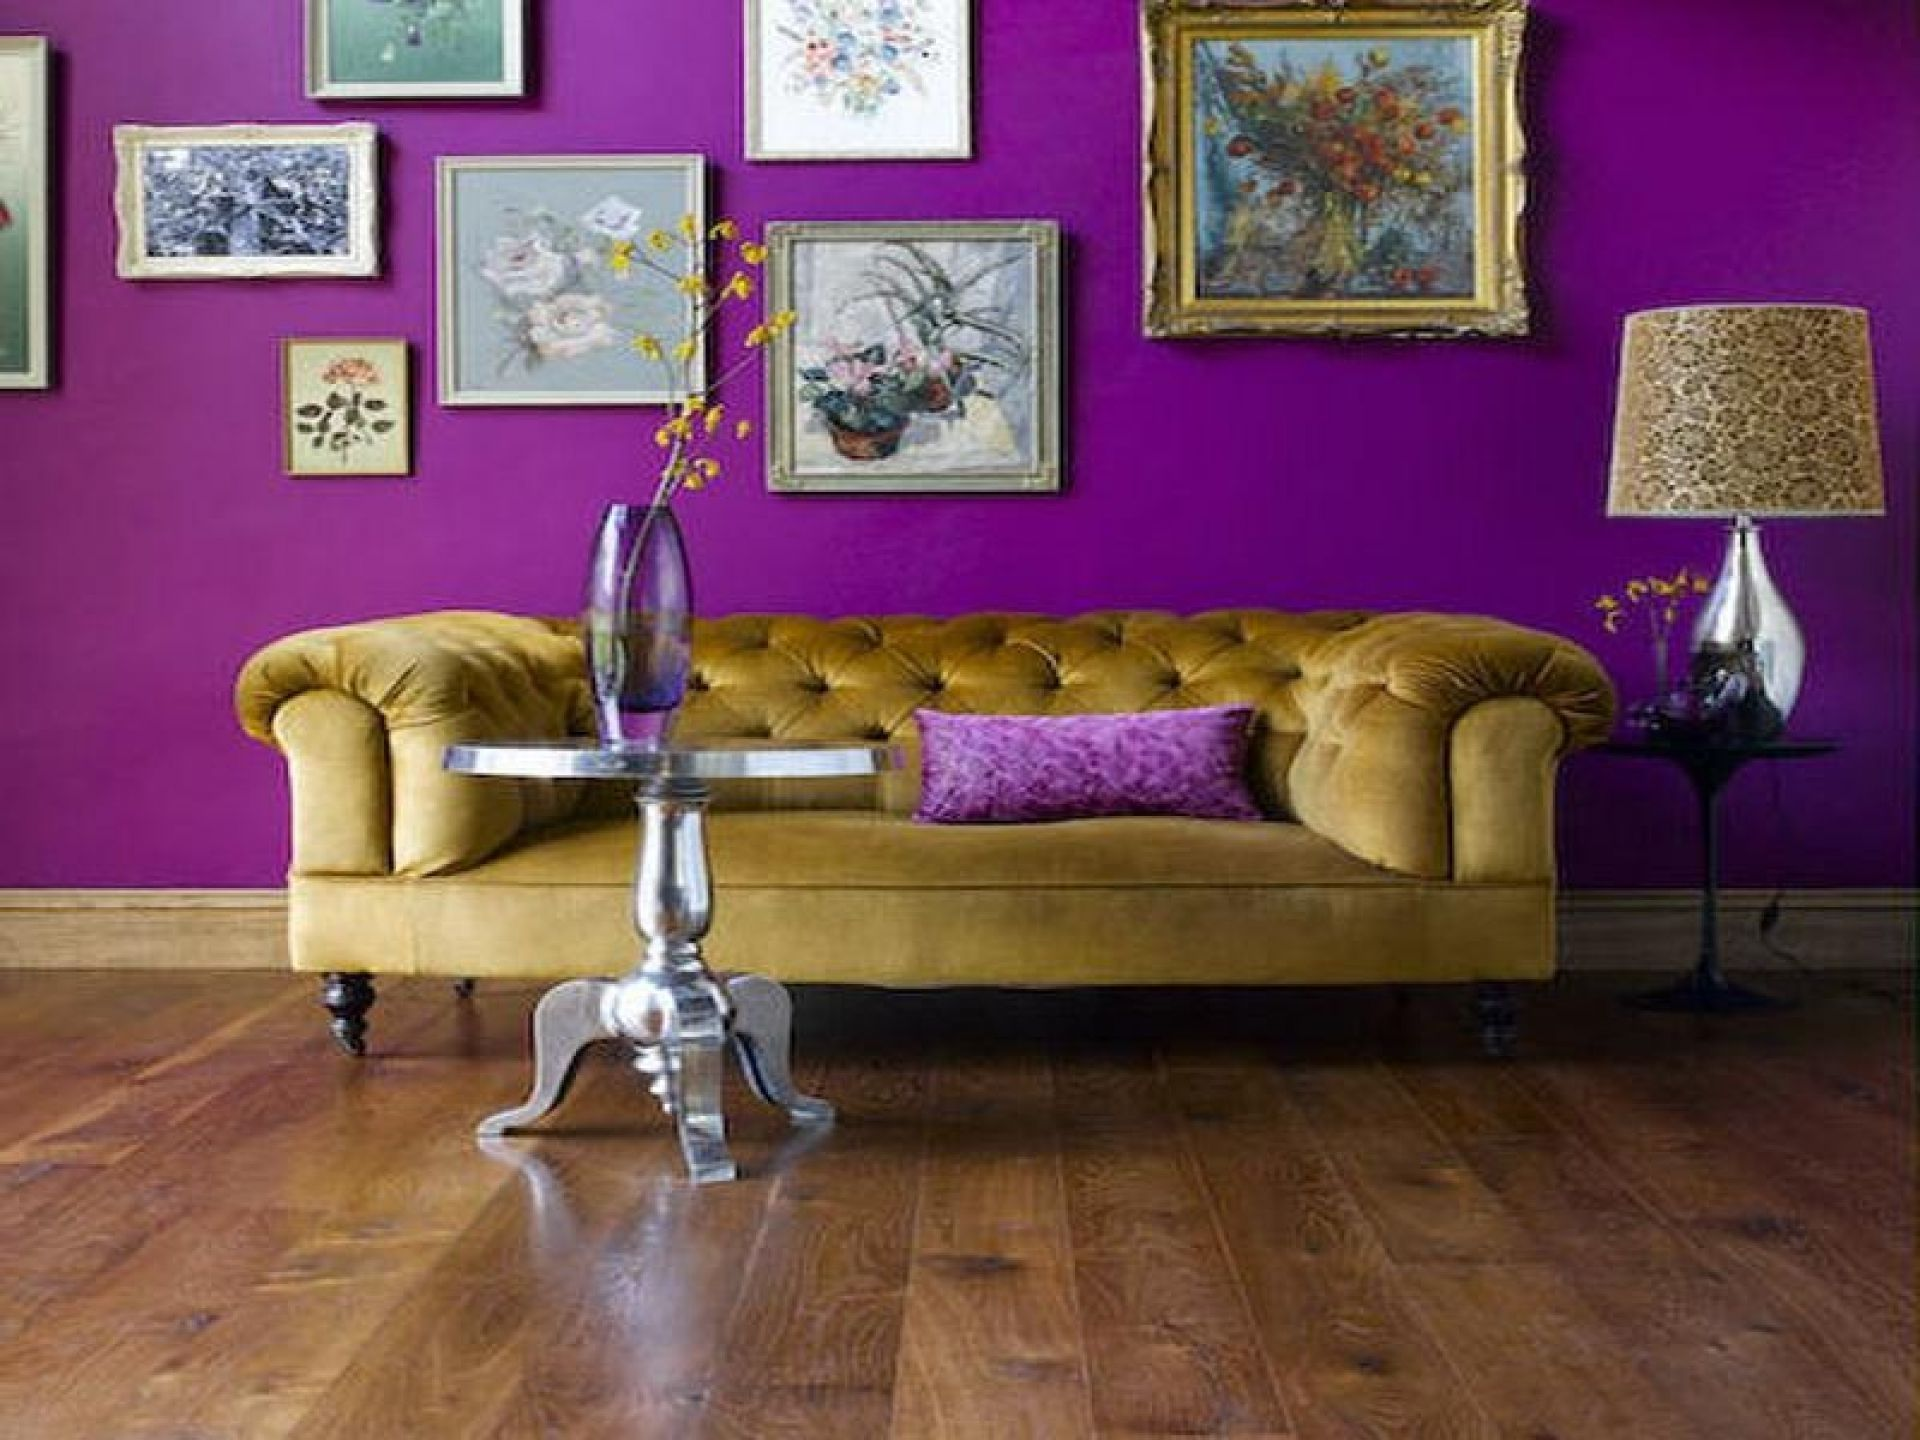 Bestsilverpaintforfurniture  Blue Wall Paint Solid Purple Classy Paint Design For Living Room Walls Review